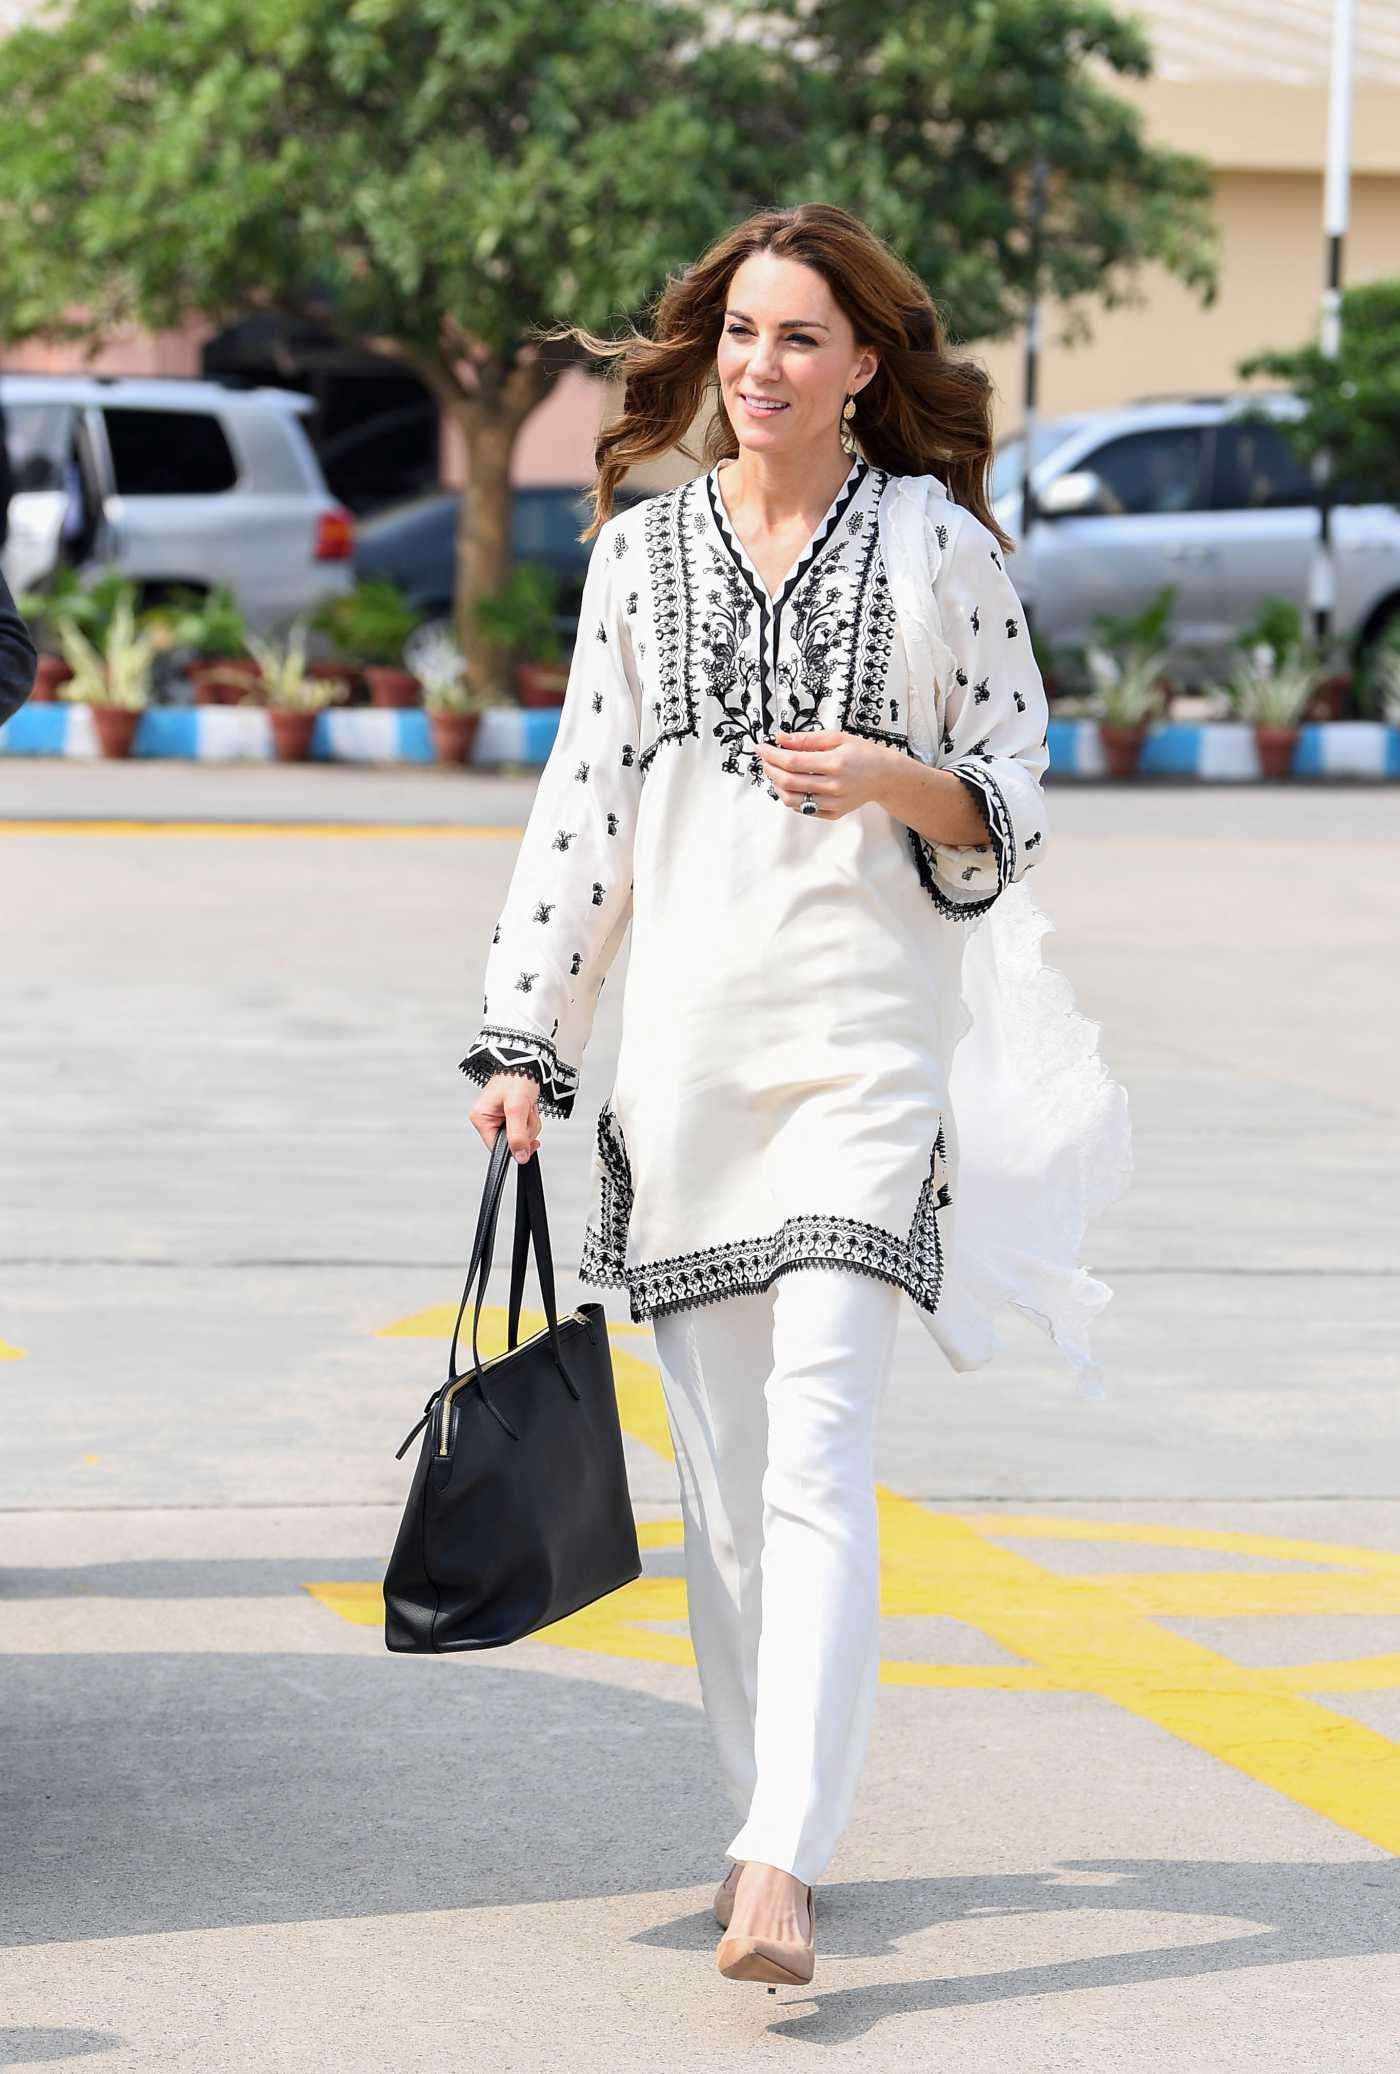 Kate Middleton in a White Pants Arrives at Lahore Airport in Lahore, Pakistan 10/18/2019